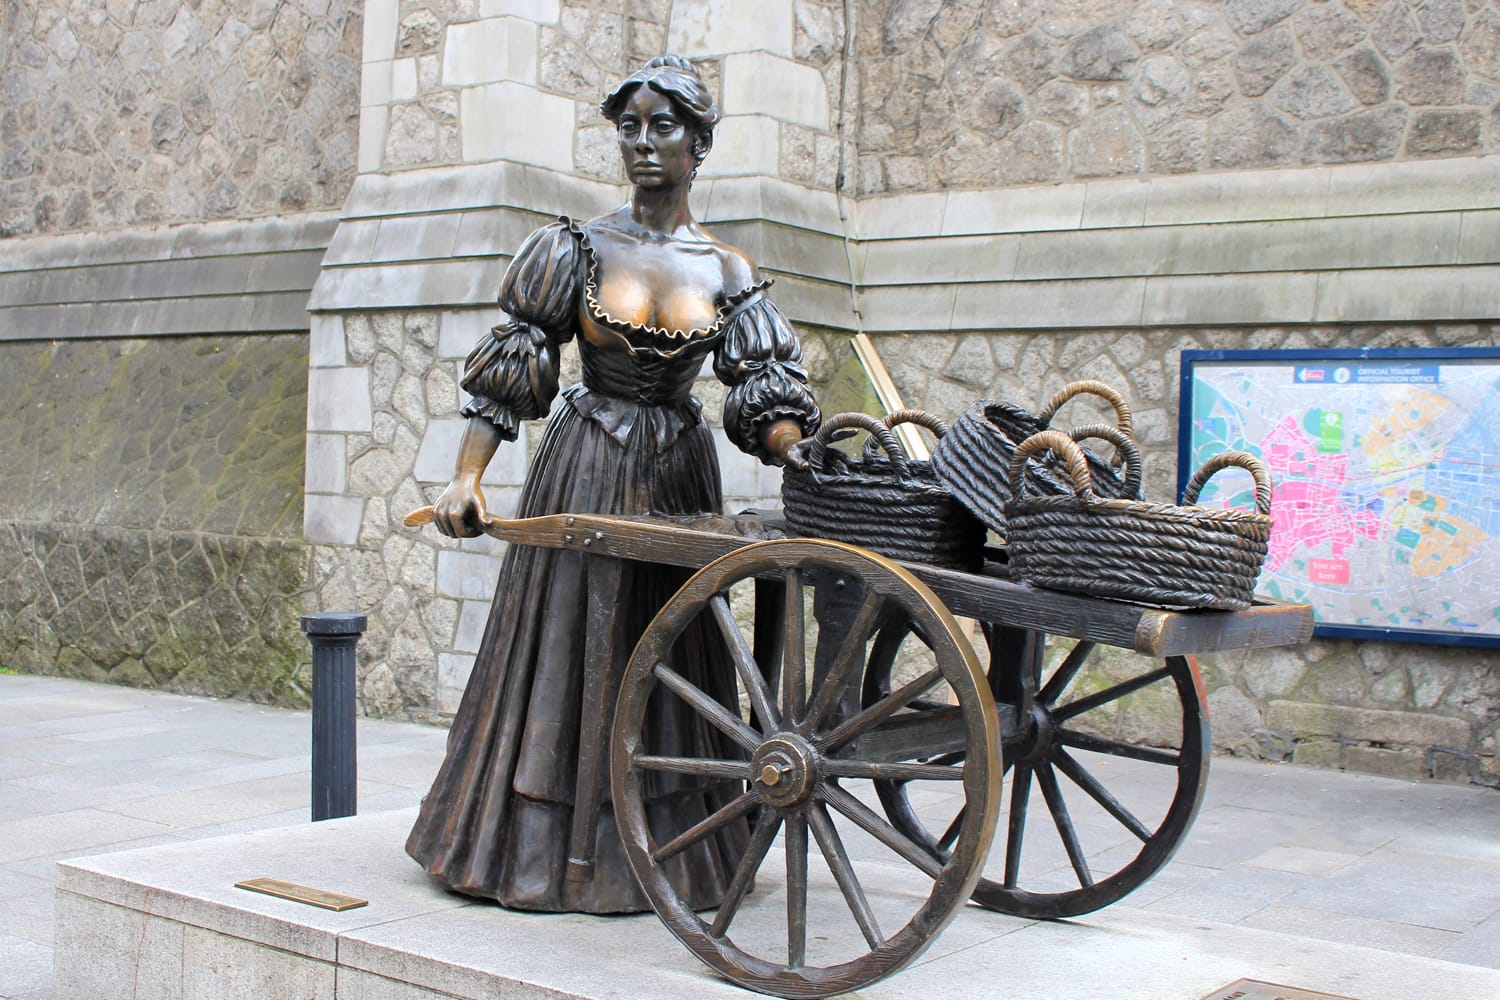 Molly Malone Statue in Dublin, Ireland